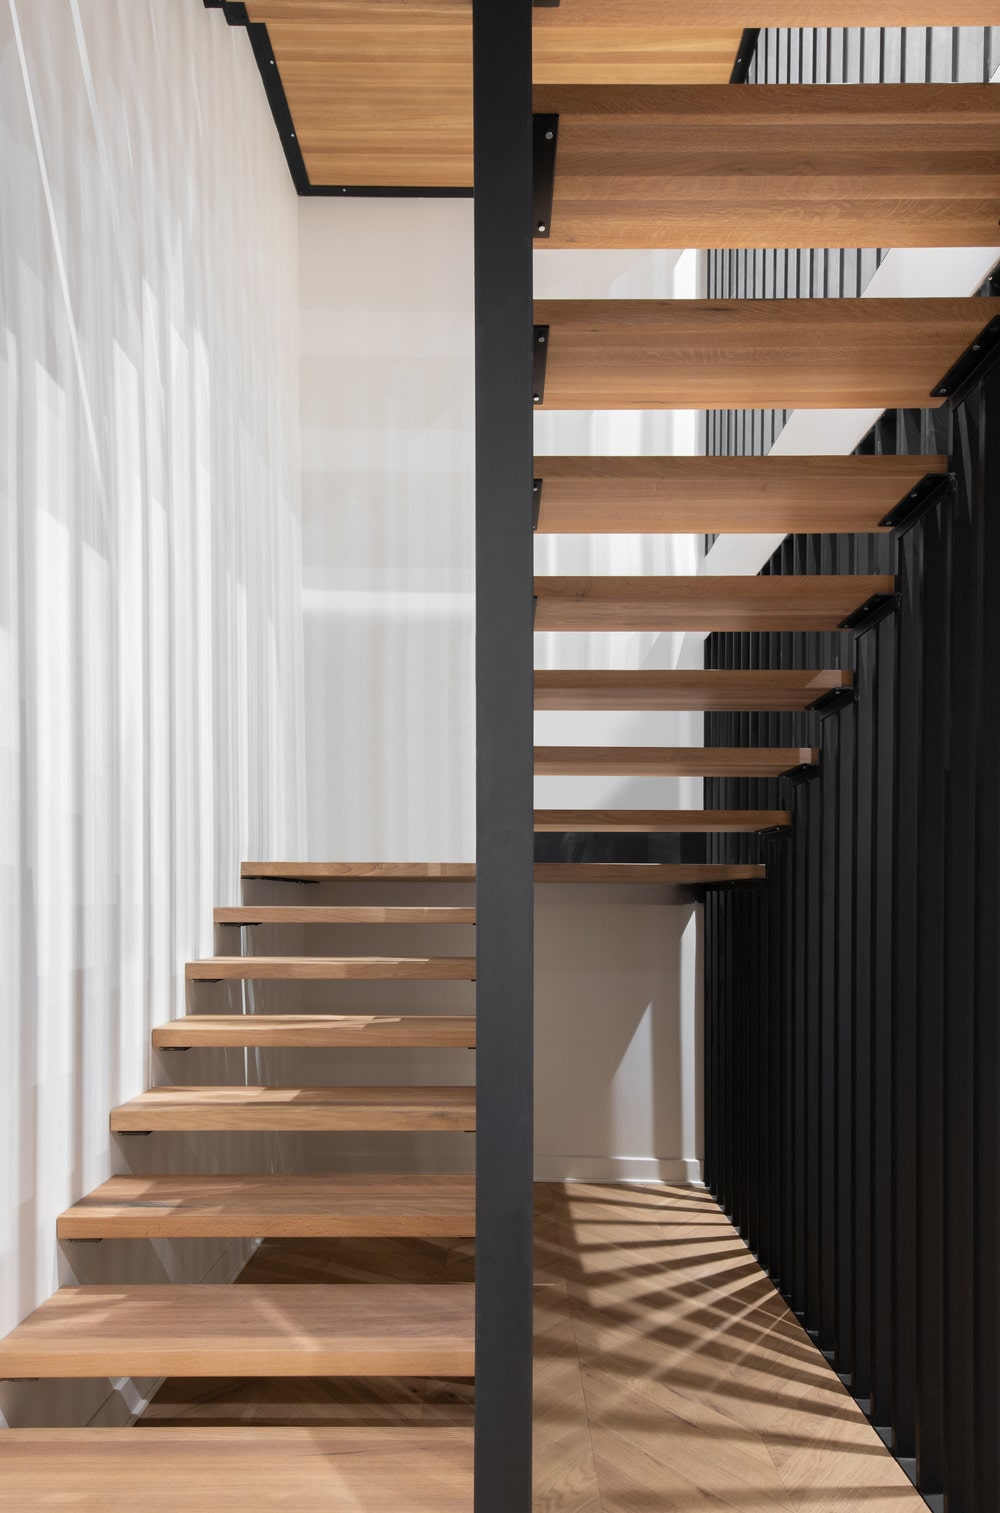 This is a close look at the staircase that has wooden steps that match the hardwood flooring contrasted by the black structures.